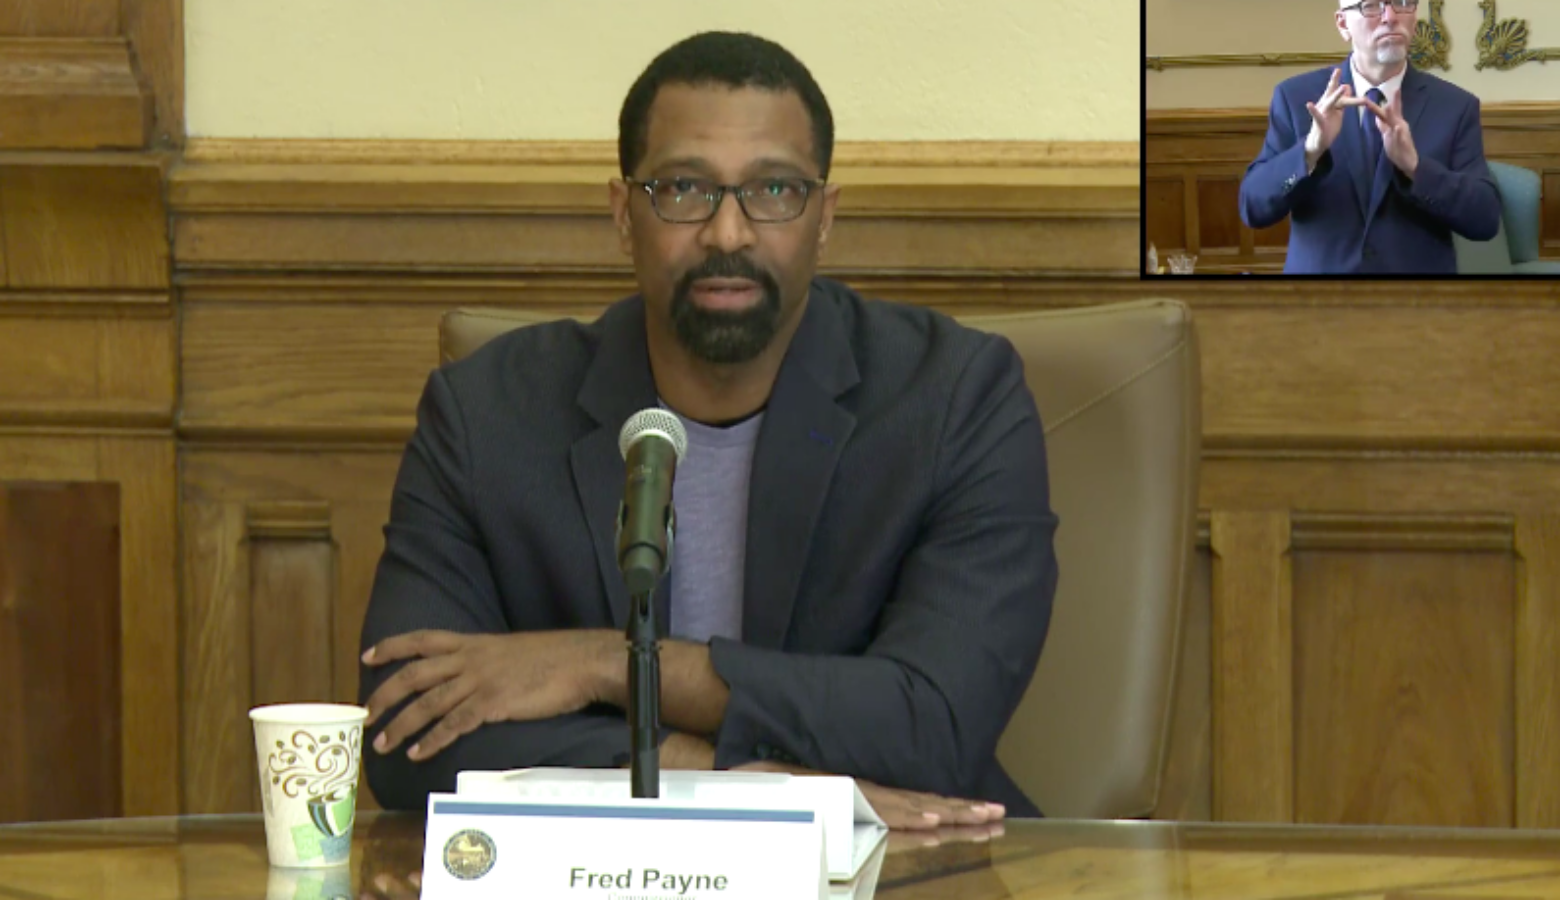 Fred Payne, commissioner of the Indiana Department of Workforce Development, gives an update on the agency's actions at a virtual press conference. (Zoom screenshot)